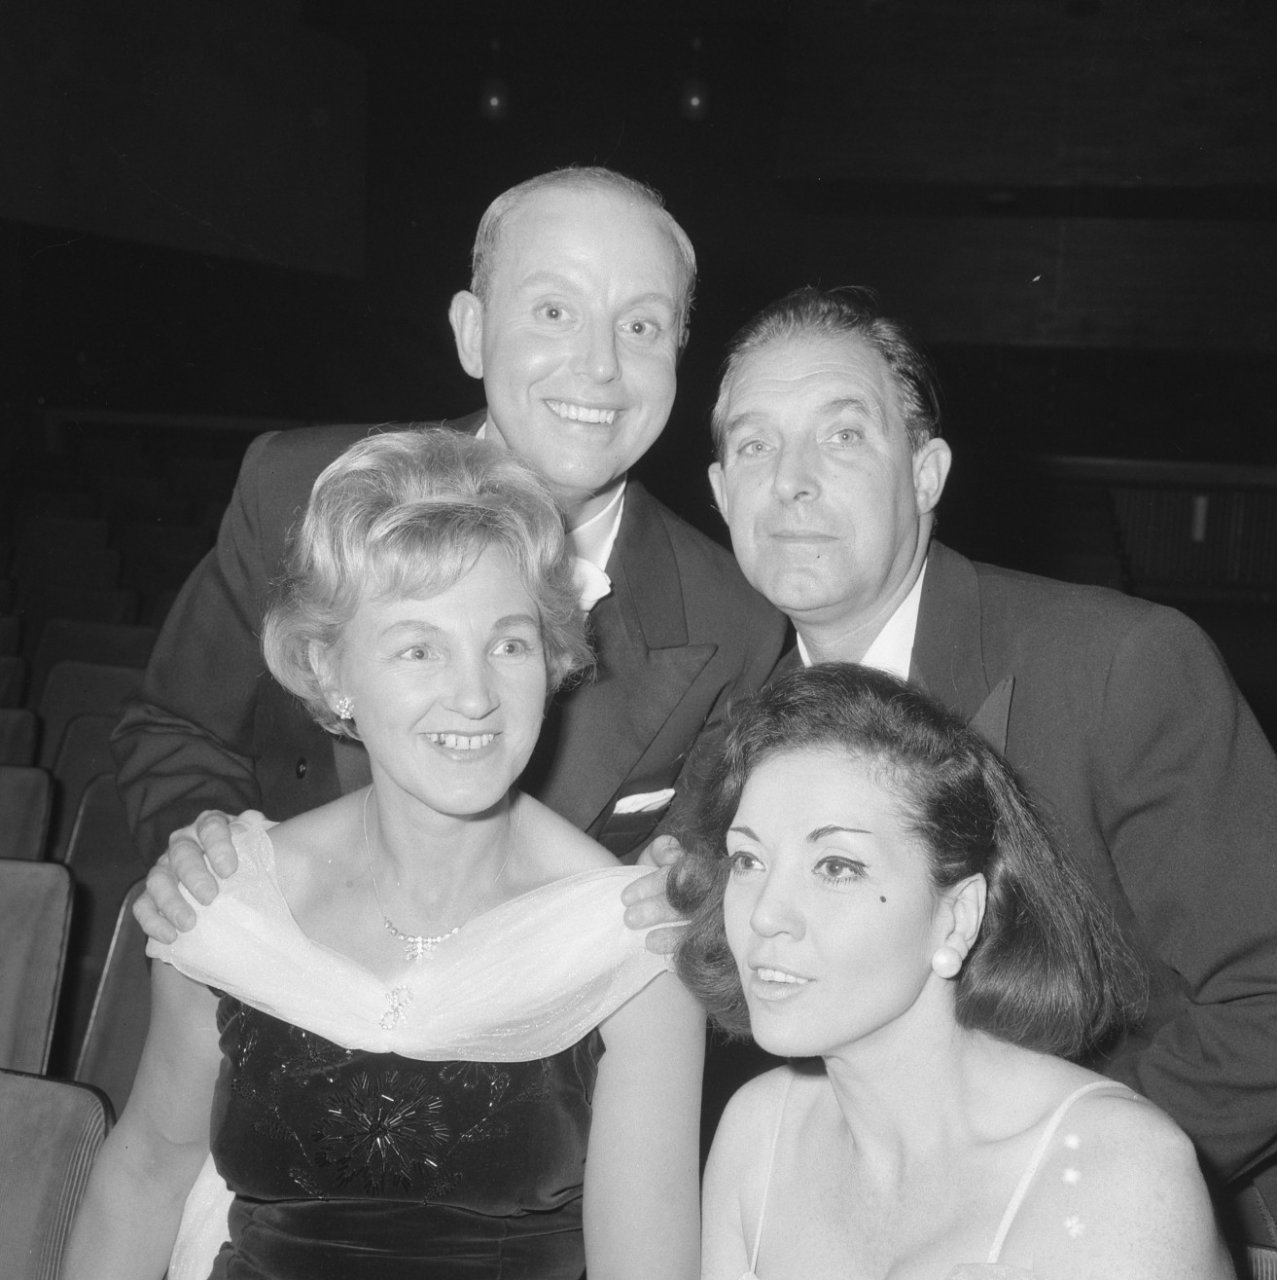 Premiere Volksopera in Cinema West in Amsterdam, voor Petra van de Bogaerde (lyrisch sopraan, links), Rosy van Daele (dramatisch sopraan). Achter Antonie Wink(links] en Chris Scheffer (tenor, rechts)_24 nov 1964